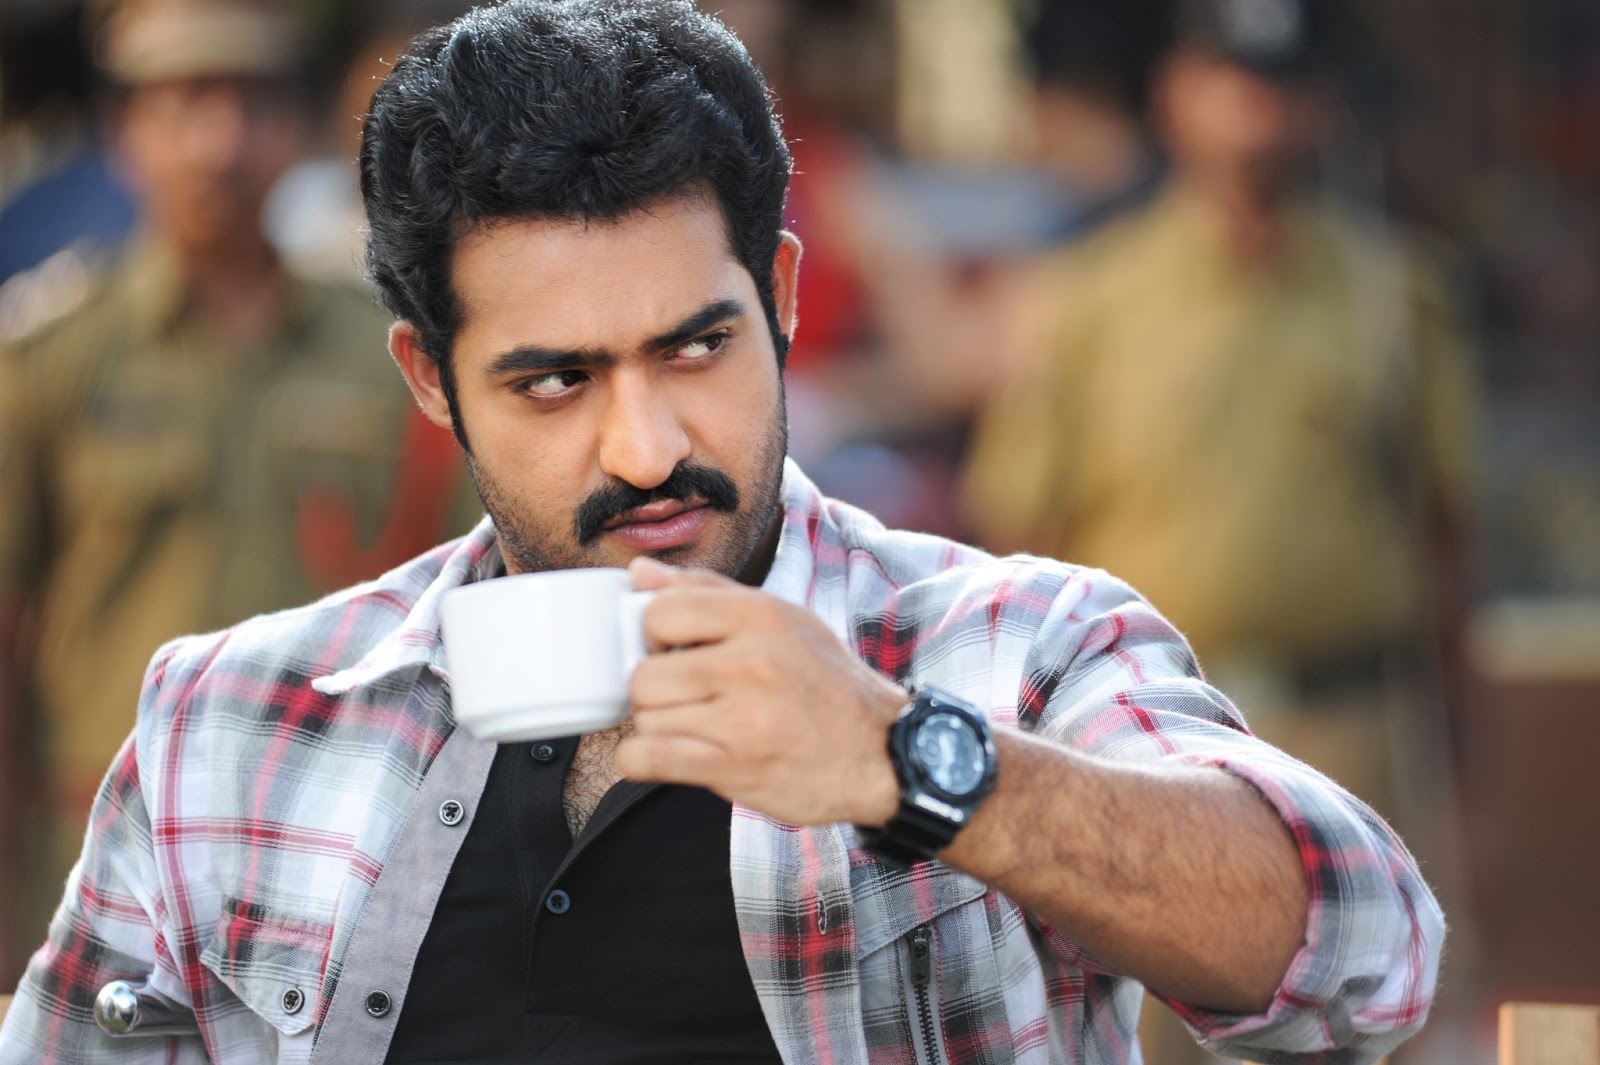 Ramayya Vastavayya 1st week Collections, Ramayya Vastavayya Box office first week collections , Ramayya Vastavayya first week collections, Ramayya Vastavayya Collections, NTR Ramayya Vastavayya Box Office Collections.